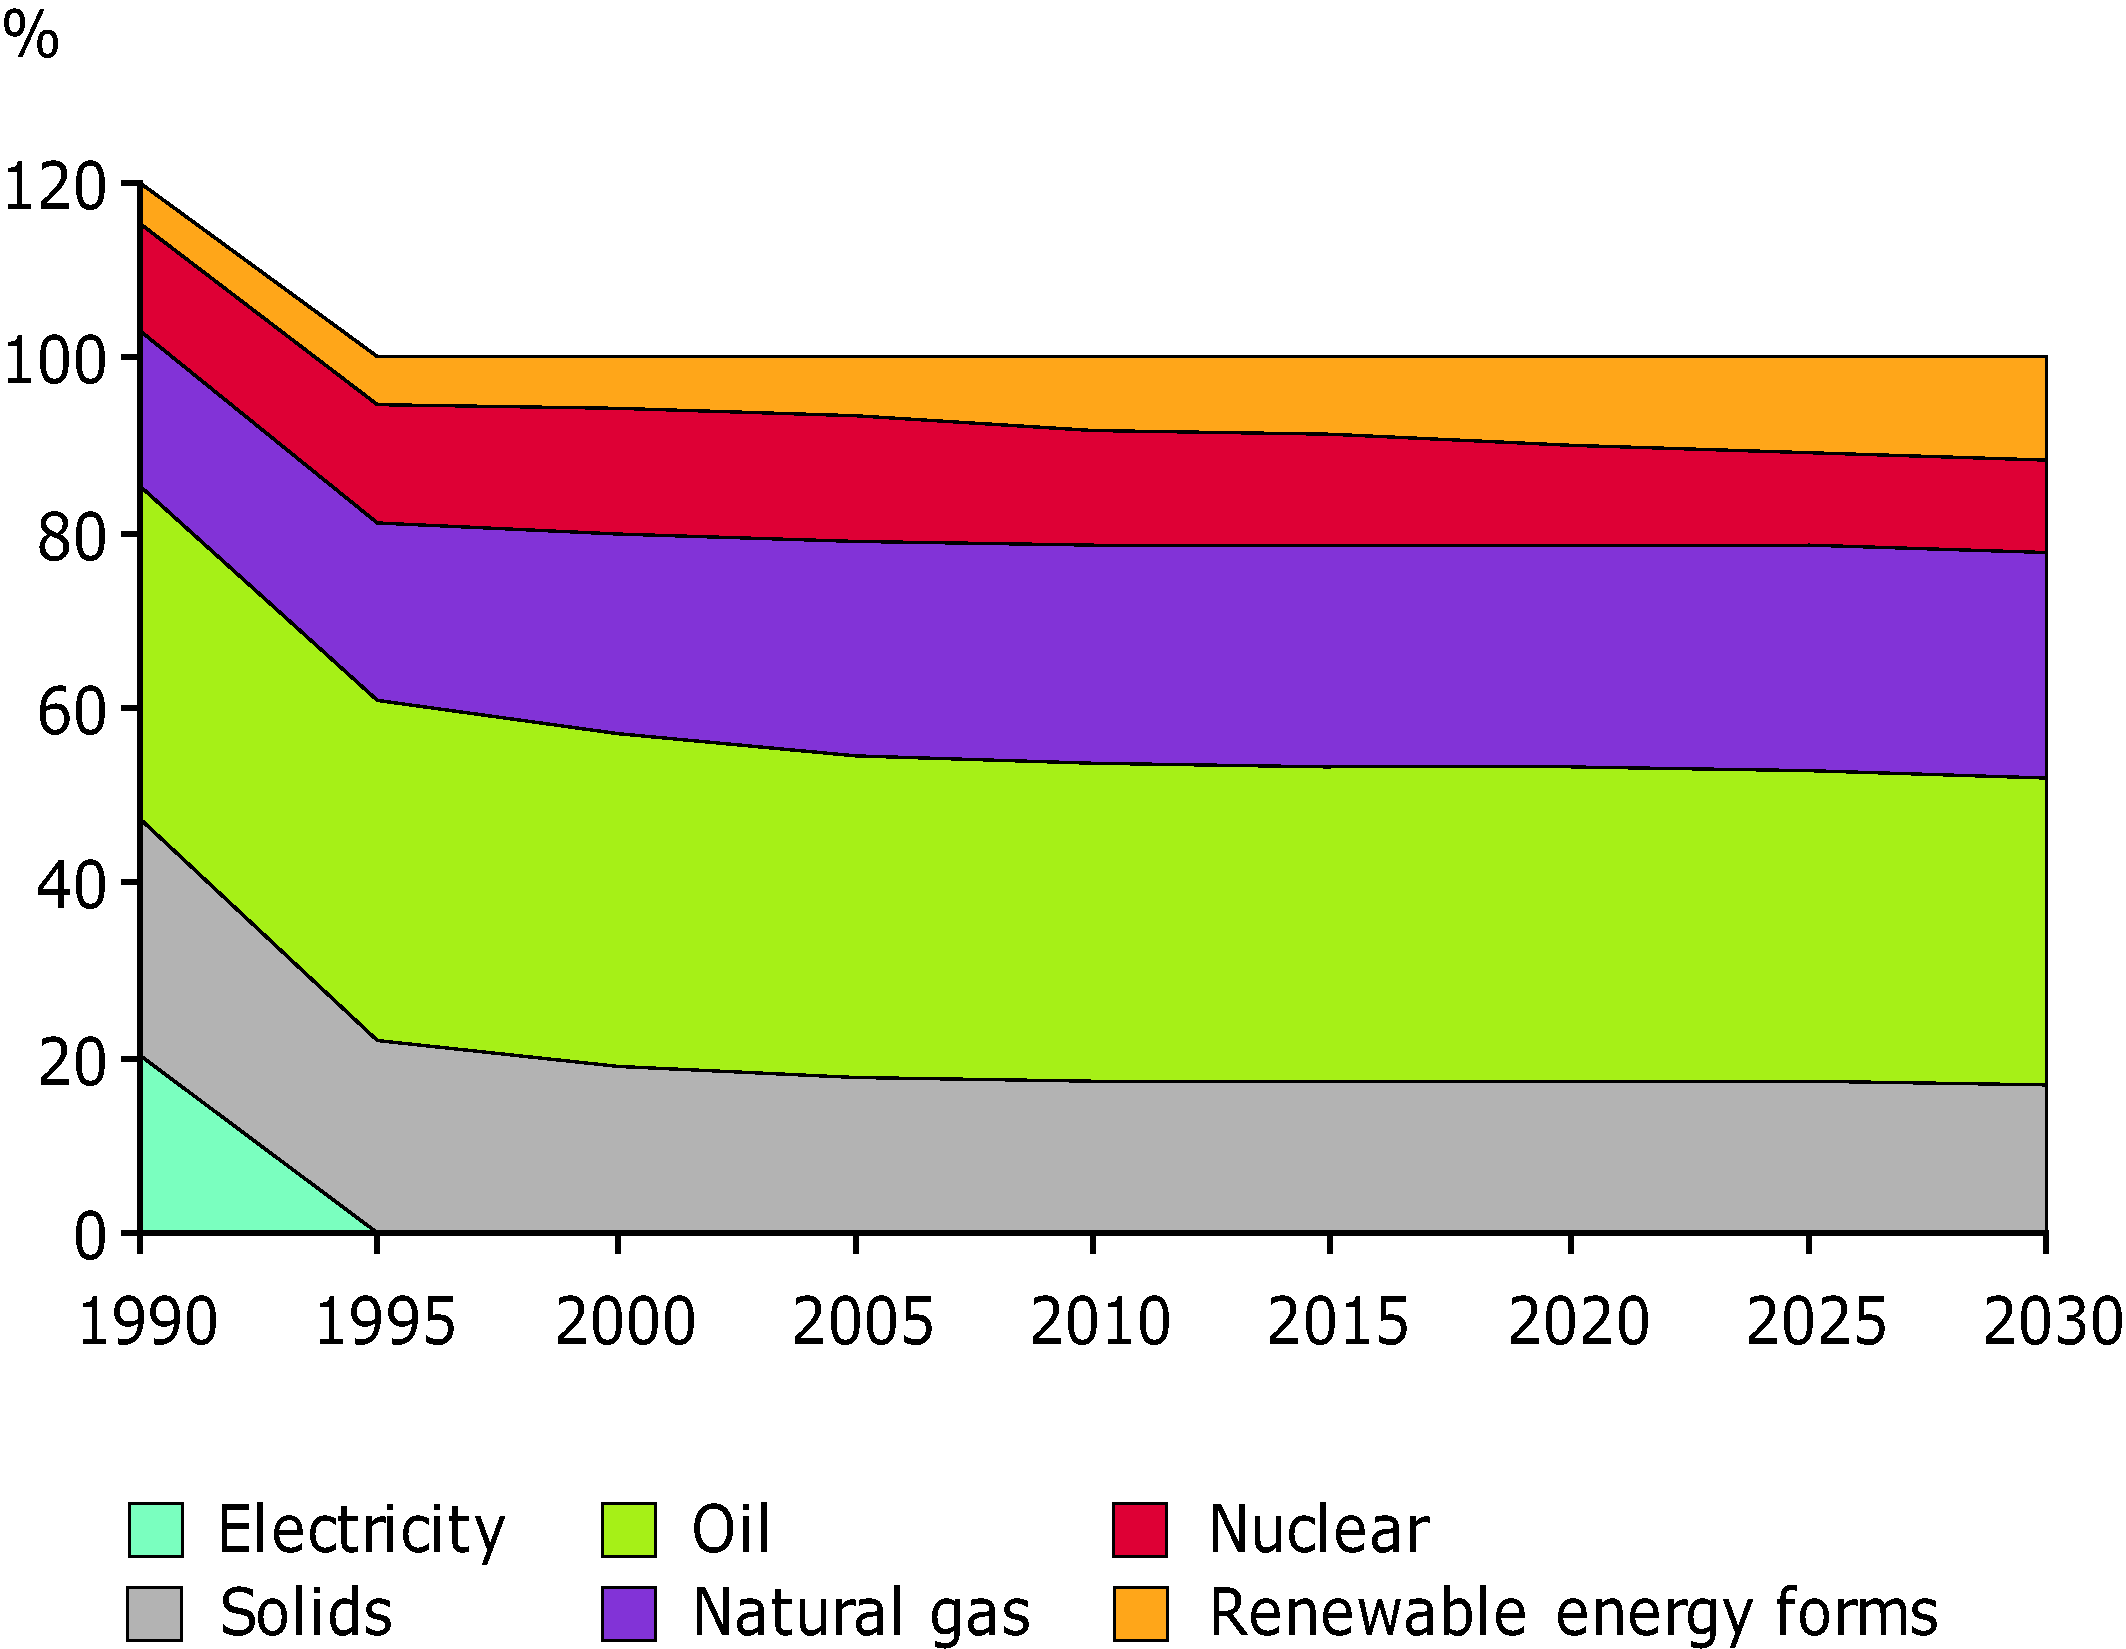 Structure of Primary Energy Consumption in EU27 in 1990-2005, and projected structure to 2030